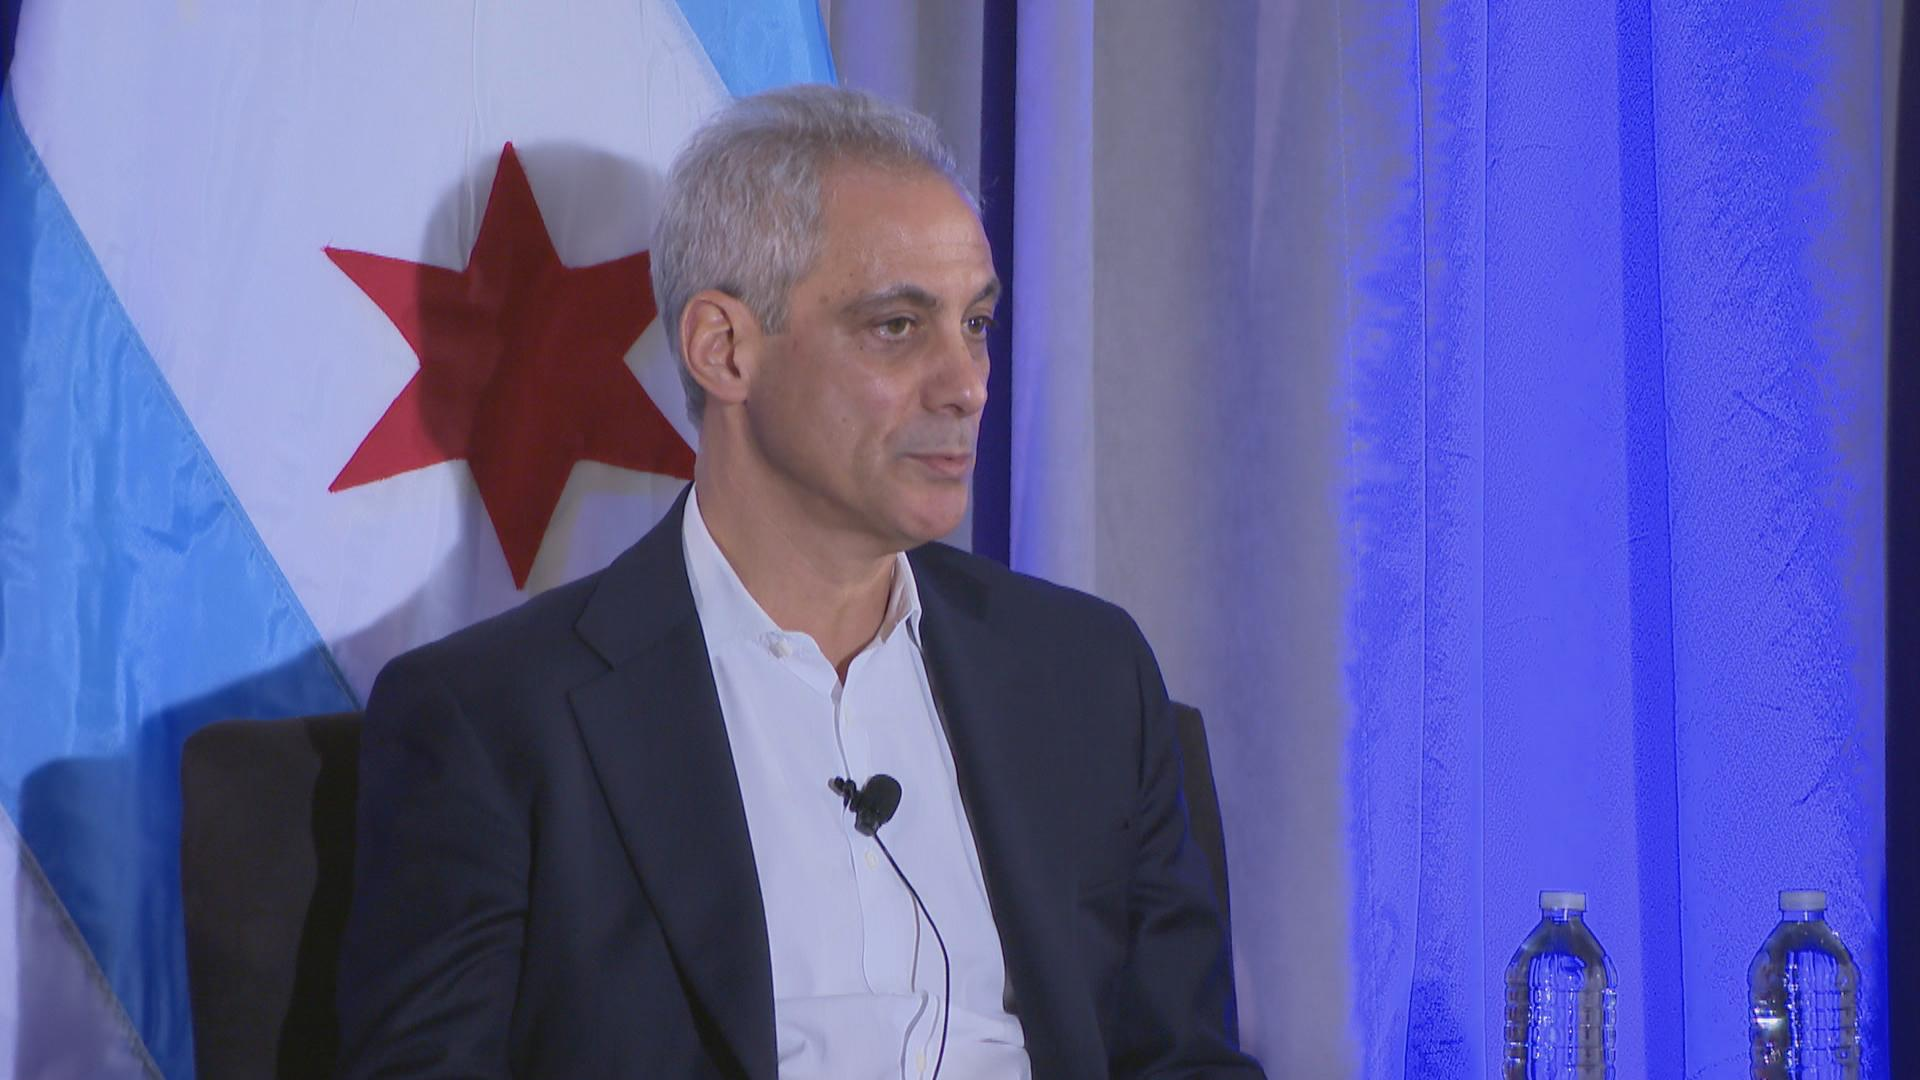 Mayor Rahm Emanuel speaks Thursday at the Chicago Cultural Center, where Chicago Public Schools was recognized as one of the College Board's AP Districts of the Year. (Chicago Tonight)